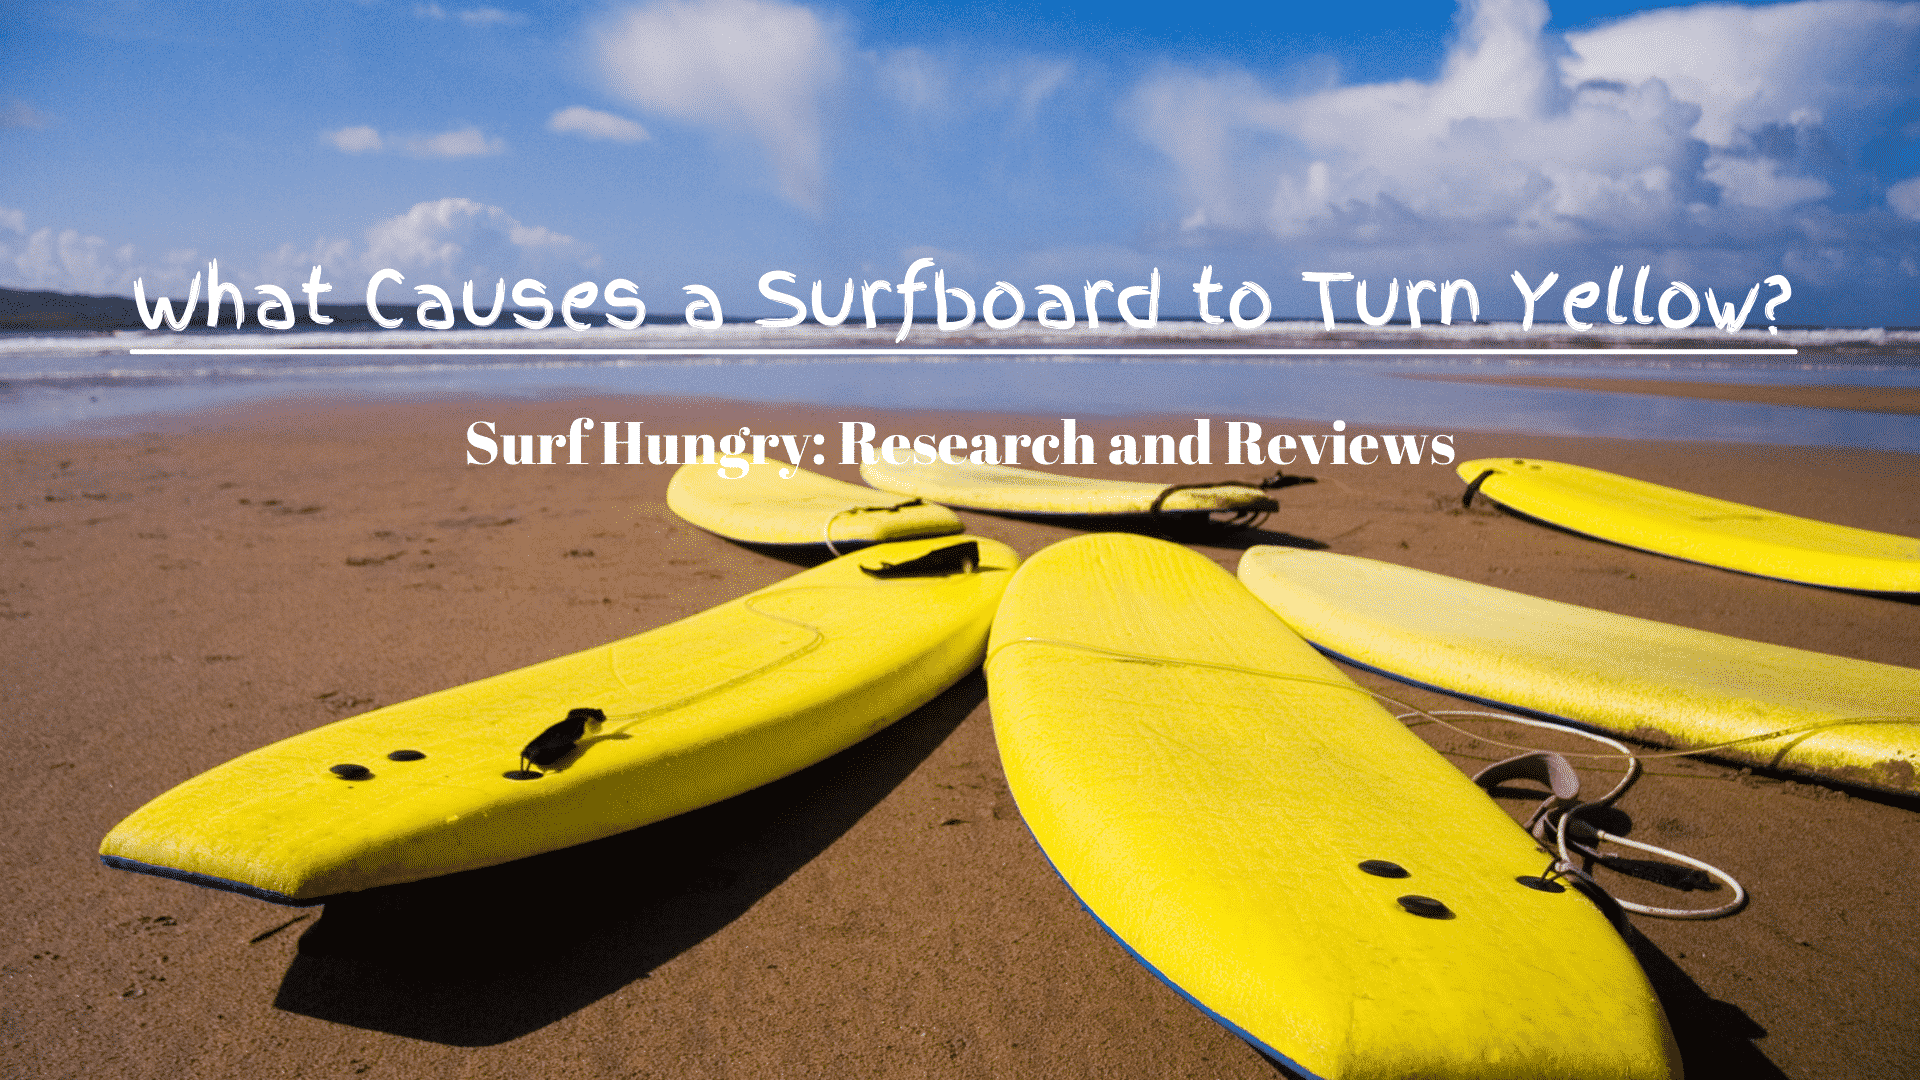 What Causes a Surfboard to Turn Yellow